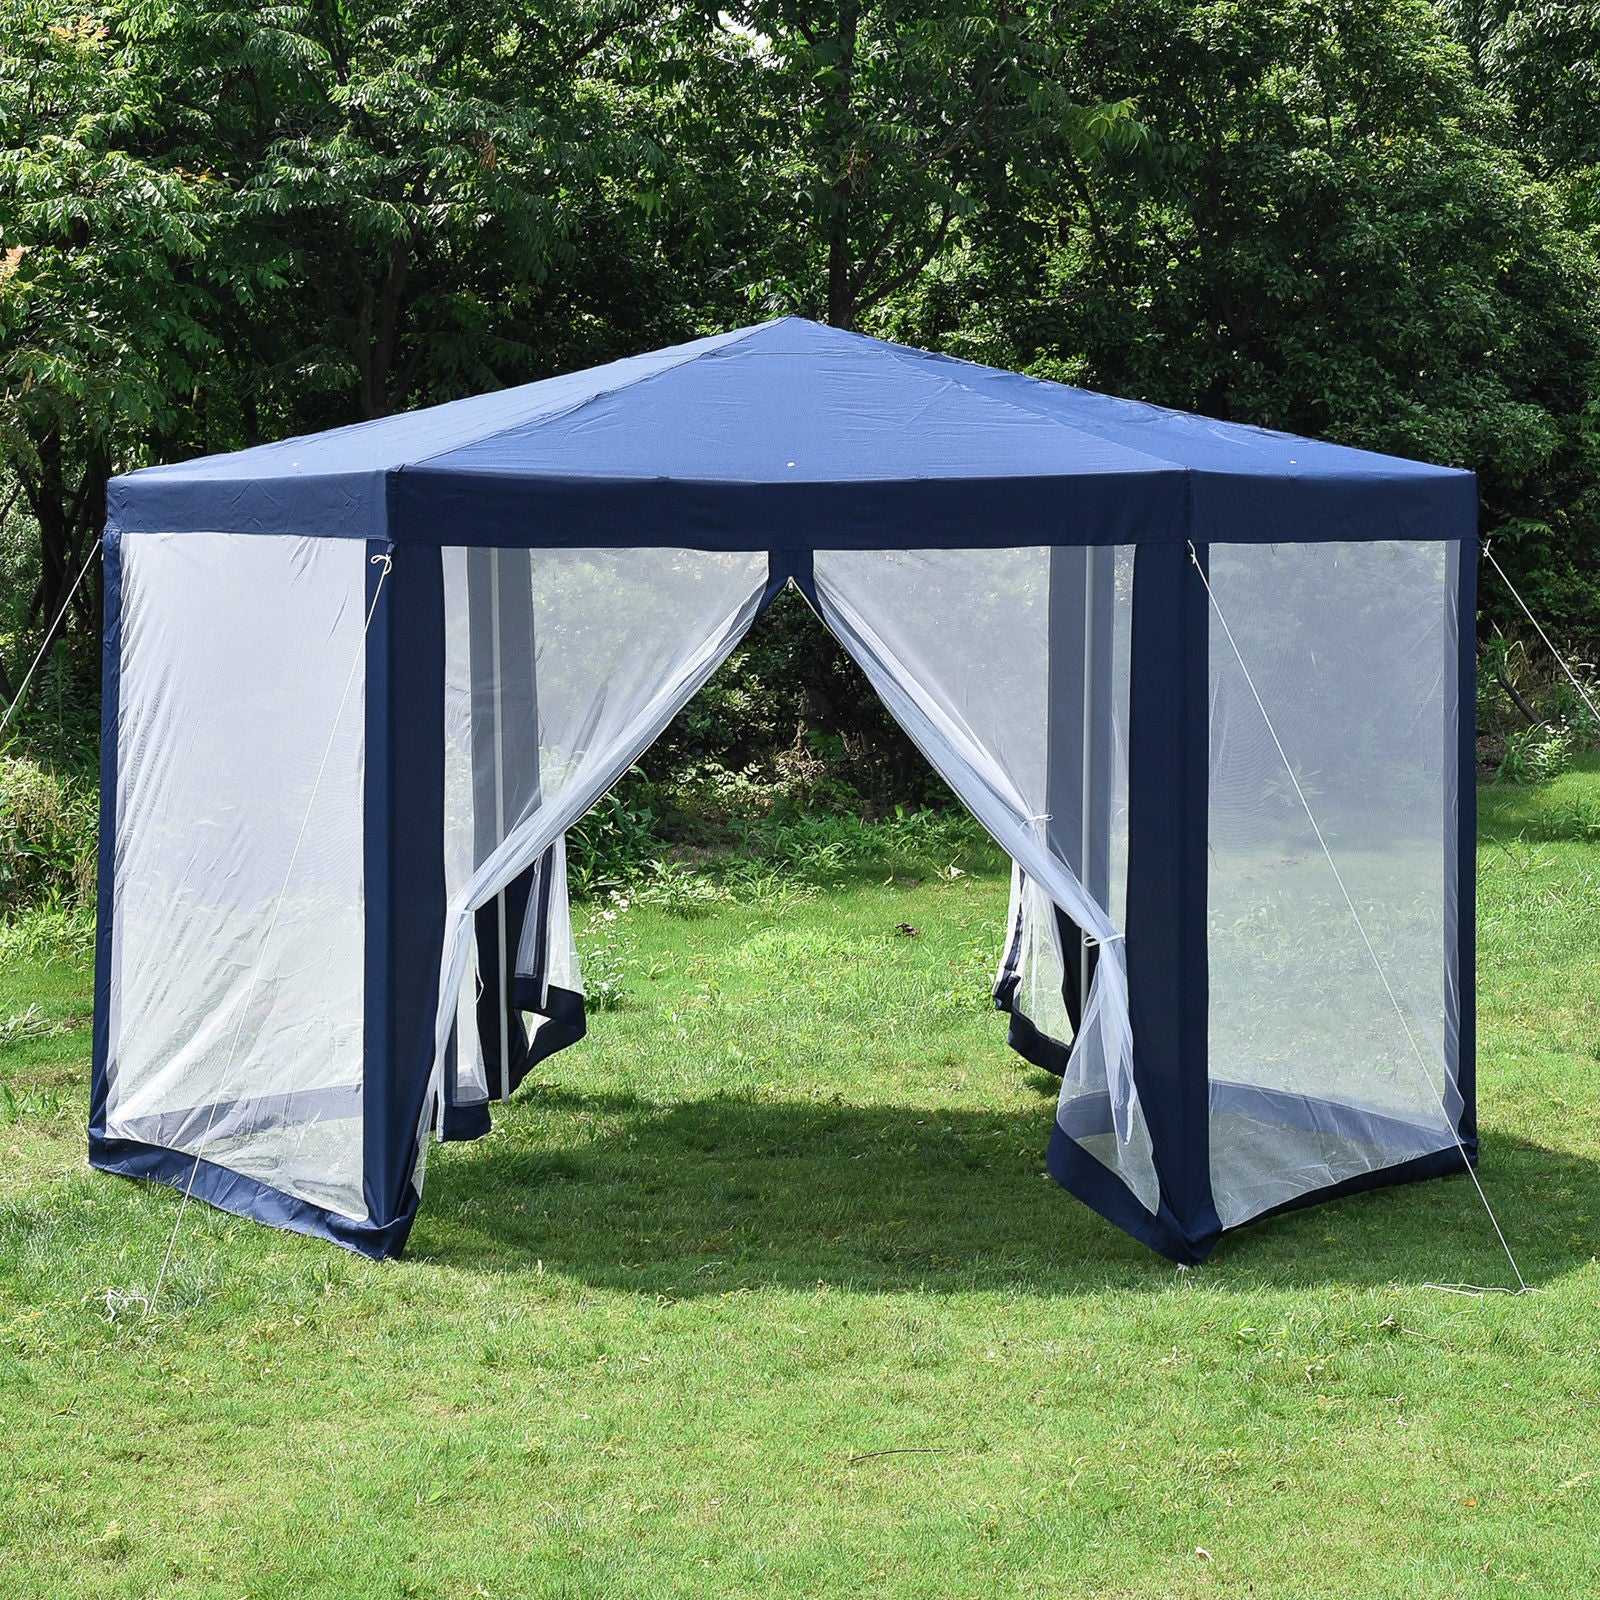 reputable site 63f8f 7ec7f Hexagonal Patio Gazebo Outdoor Canopy Party Tent Event with Mosquito Net  Blue